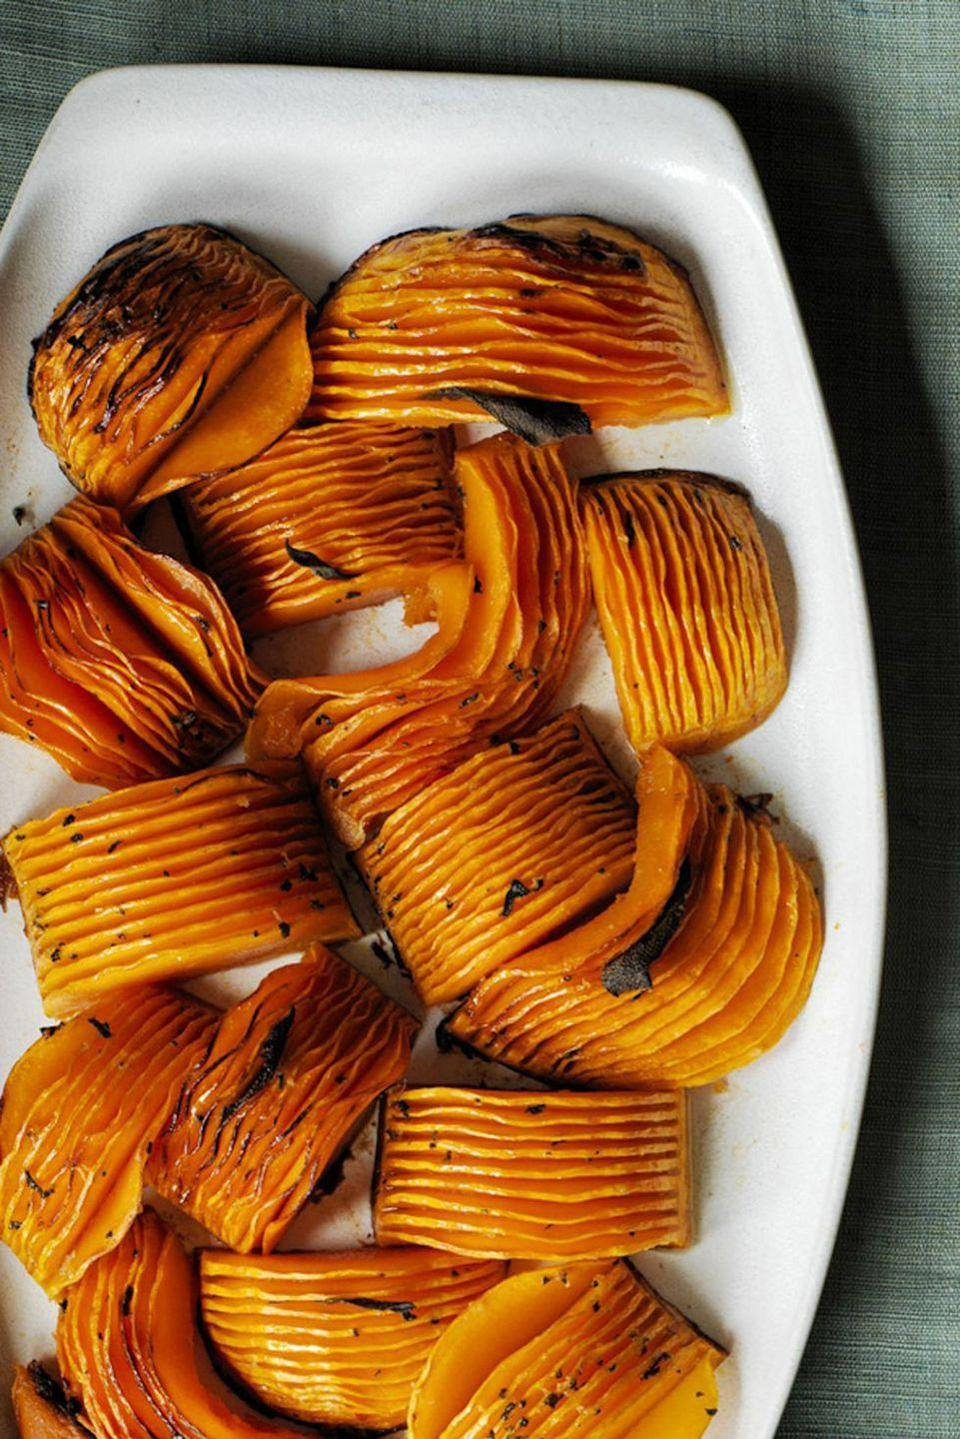 """<p>These seasoned, buttery sweet potatoes will be the talk of the night and make a perfect fall appetizer. </p><p><strong><em><a href=""""https://www.womansday.com/food-recipes/food-drinks/recipes/a60499/hasselback-butternut-squash-with-browned-butter-recipe/"""" rel=""""nofollow noopener"""" target=""""_blank"""" data-ylk=""""slk:Get the recipe for Hasselback Butternut Squash with Browned Butter."""" class=""""link rapid-noclick-resp"""">Get the recipe for Hasselback Butternut Squash with Browned Butter.</a></em></strong></p>"""